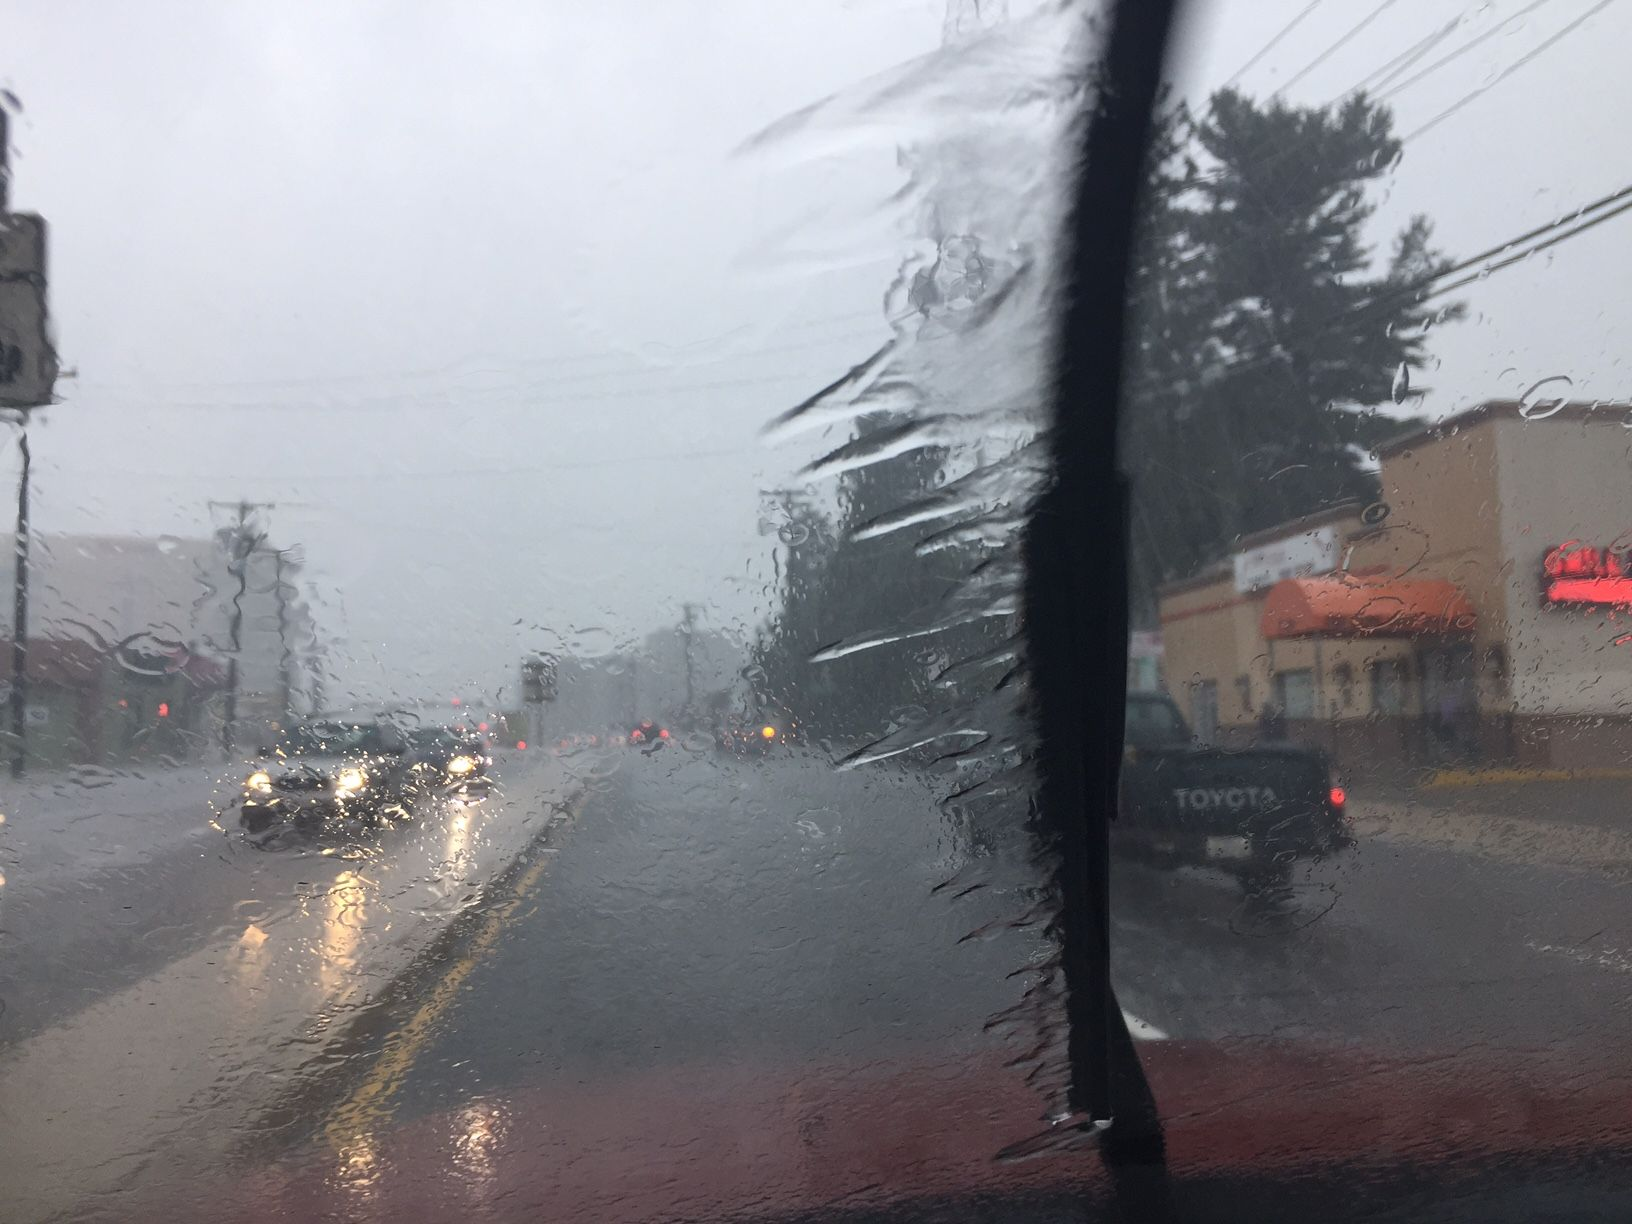 Rain slams drivers in Wheaton, Maryland on Friday. (WTOP/Rich Johnson)